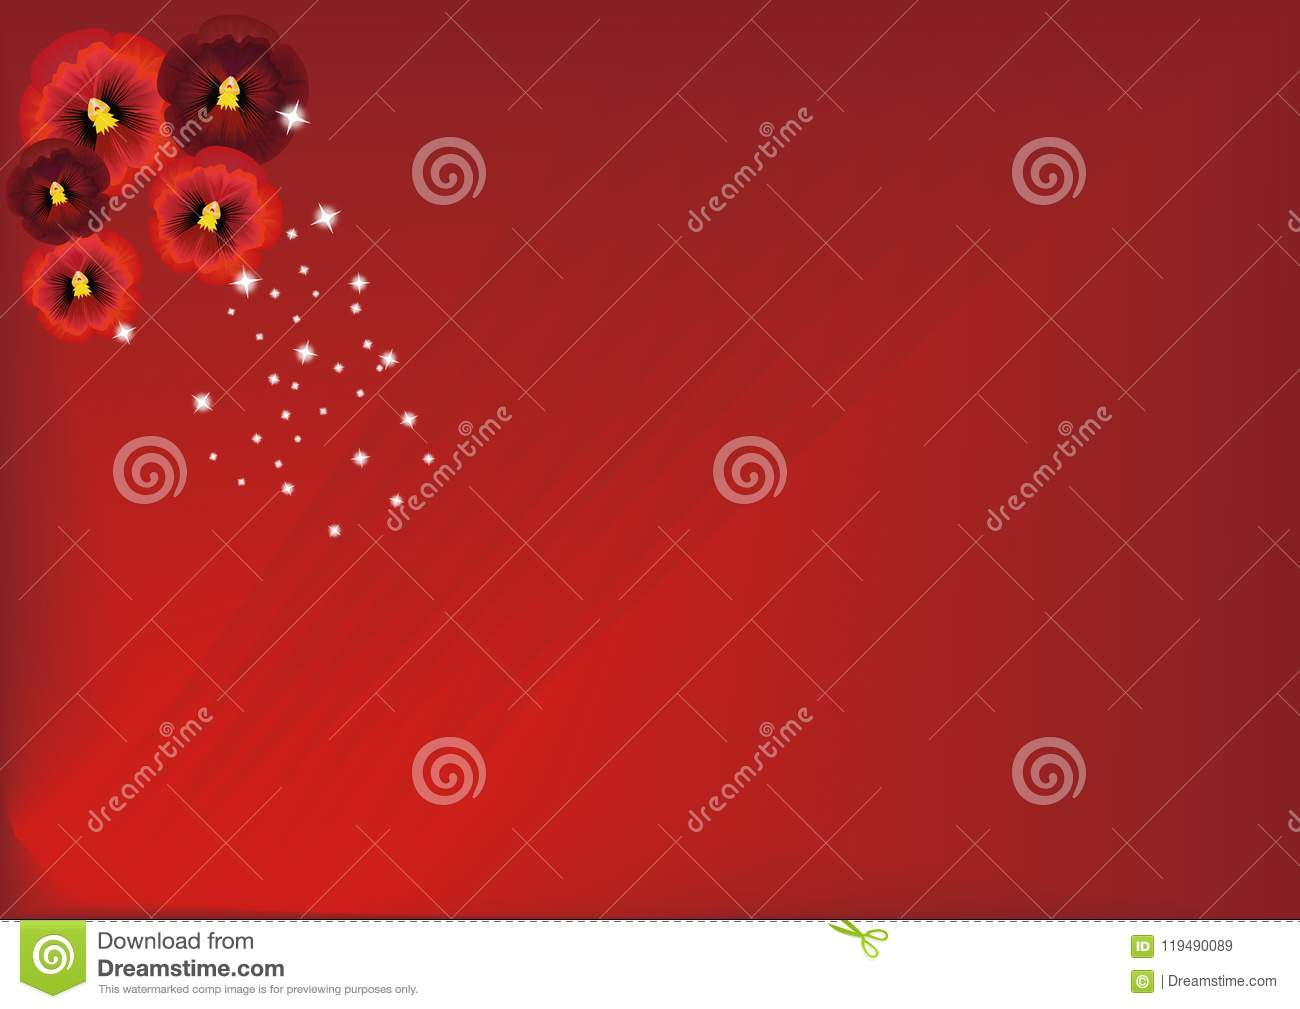 Just Red Pansies Backdrop